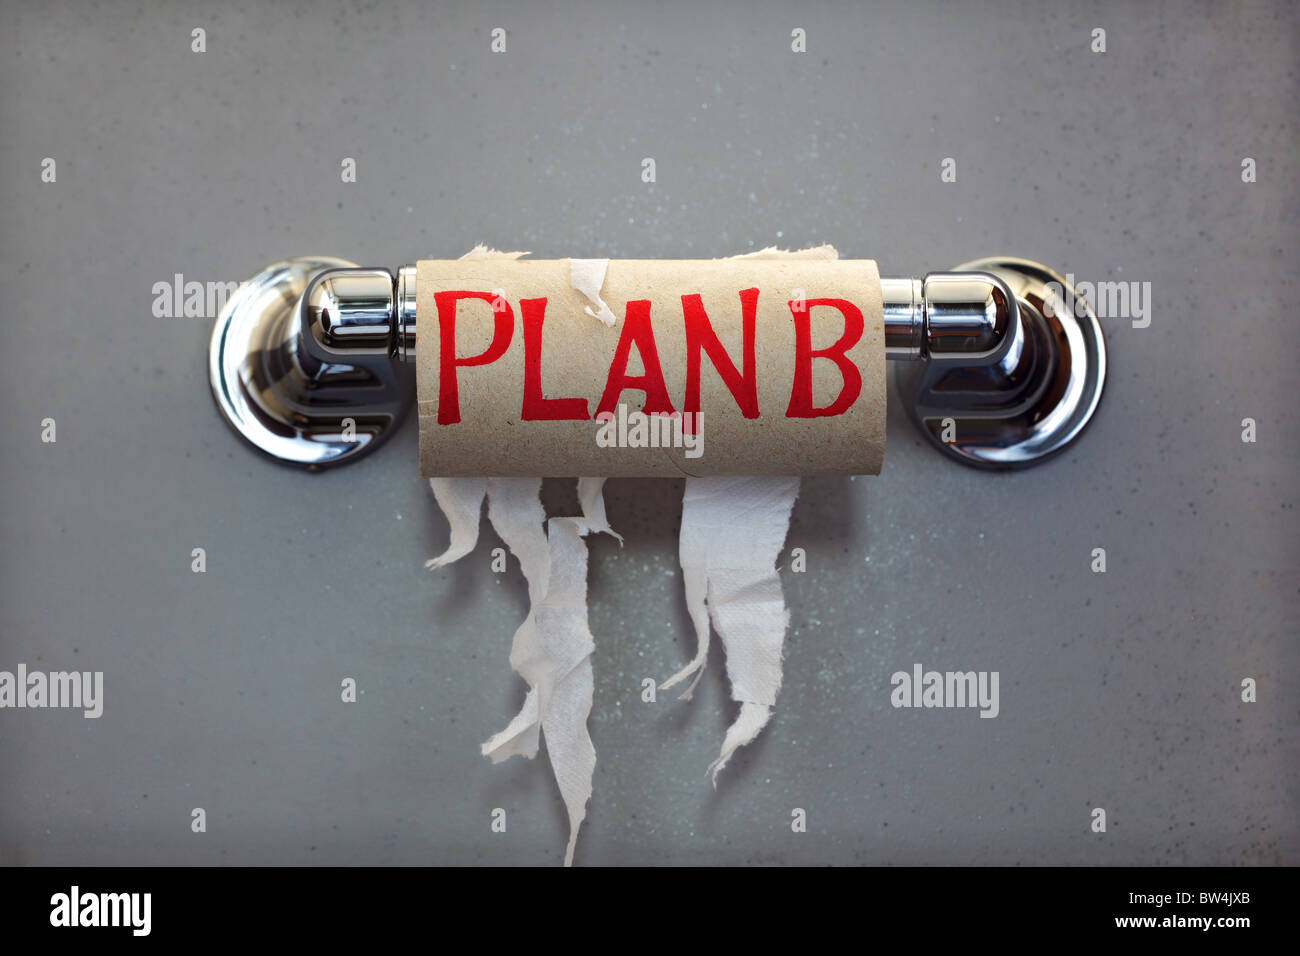 Plan B out of toilet paper - Stock Image